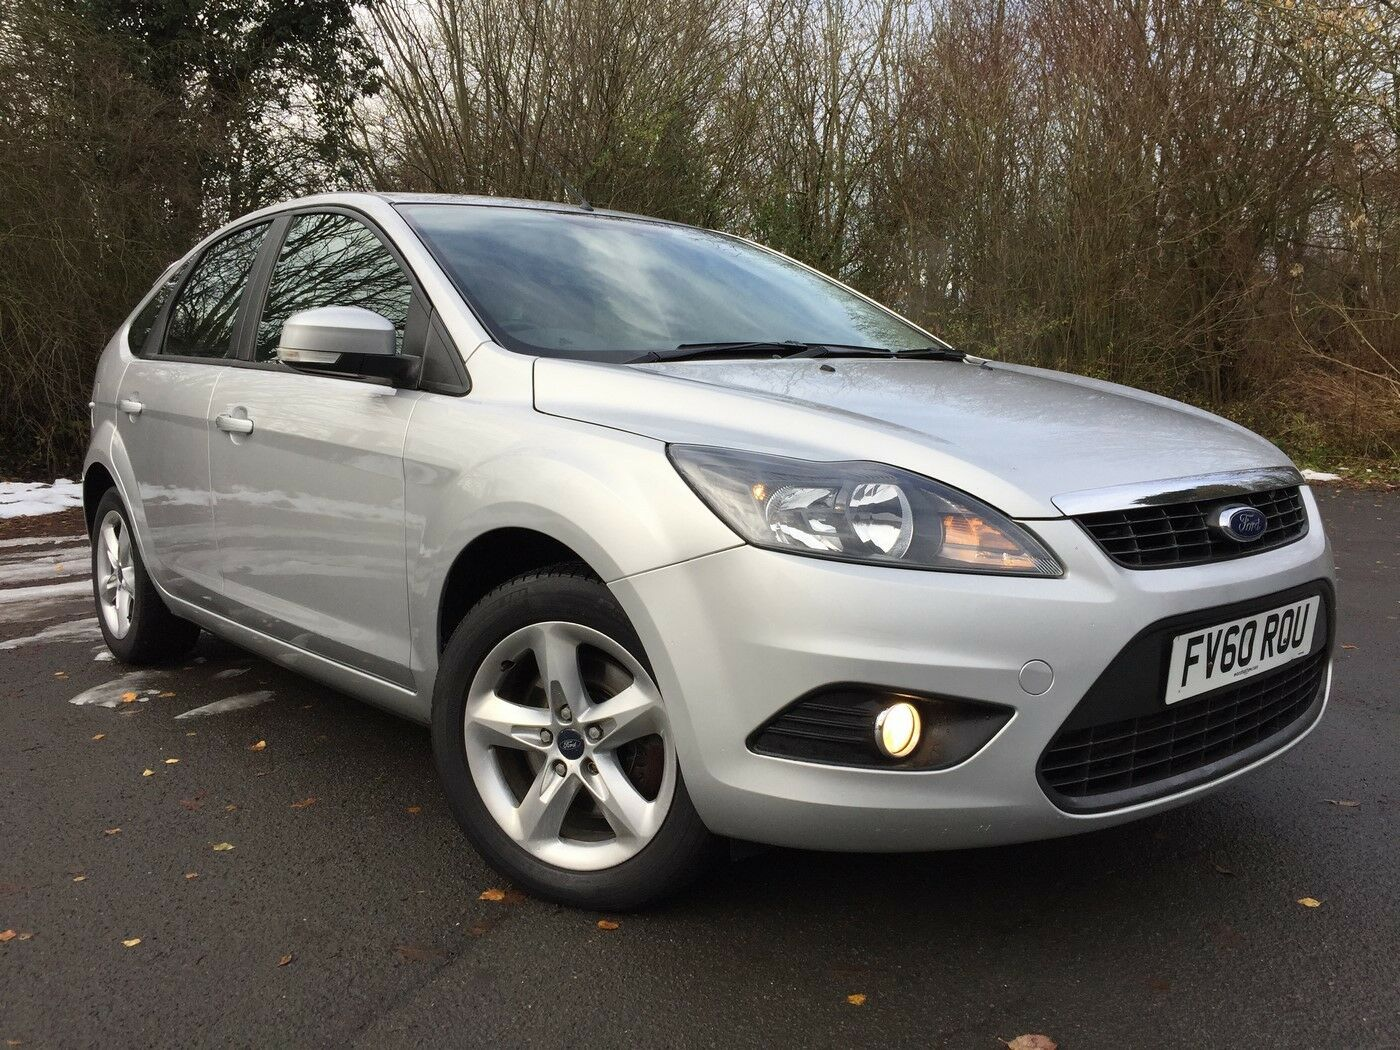 2010 ford focus 2 0 tdci automatic mot 09 18 cd player alloys very clean vehicle 2. Black Bedroom Furniture Sets. Home Design Ideas